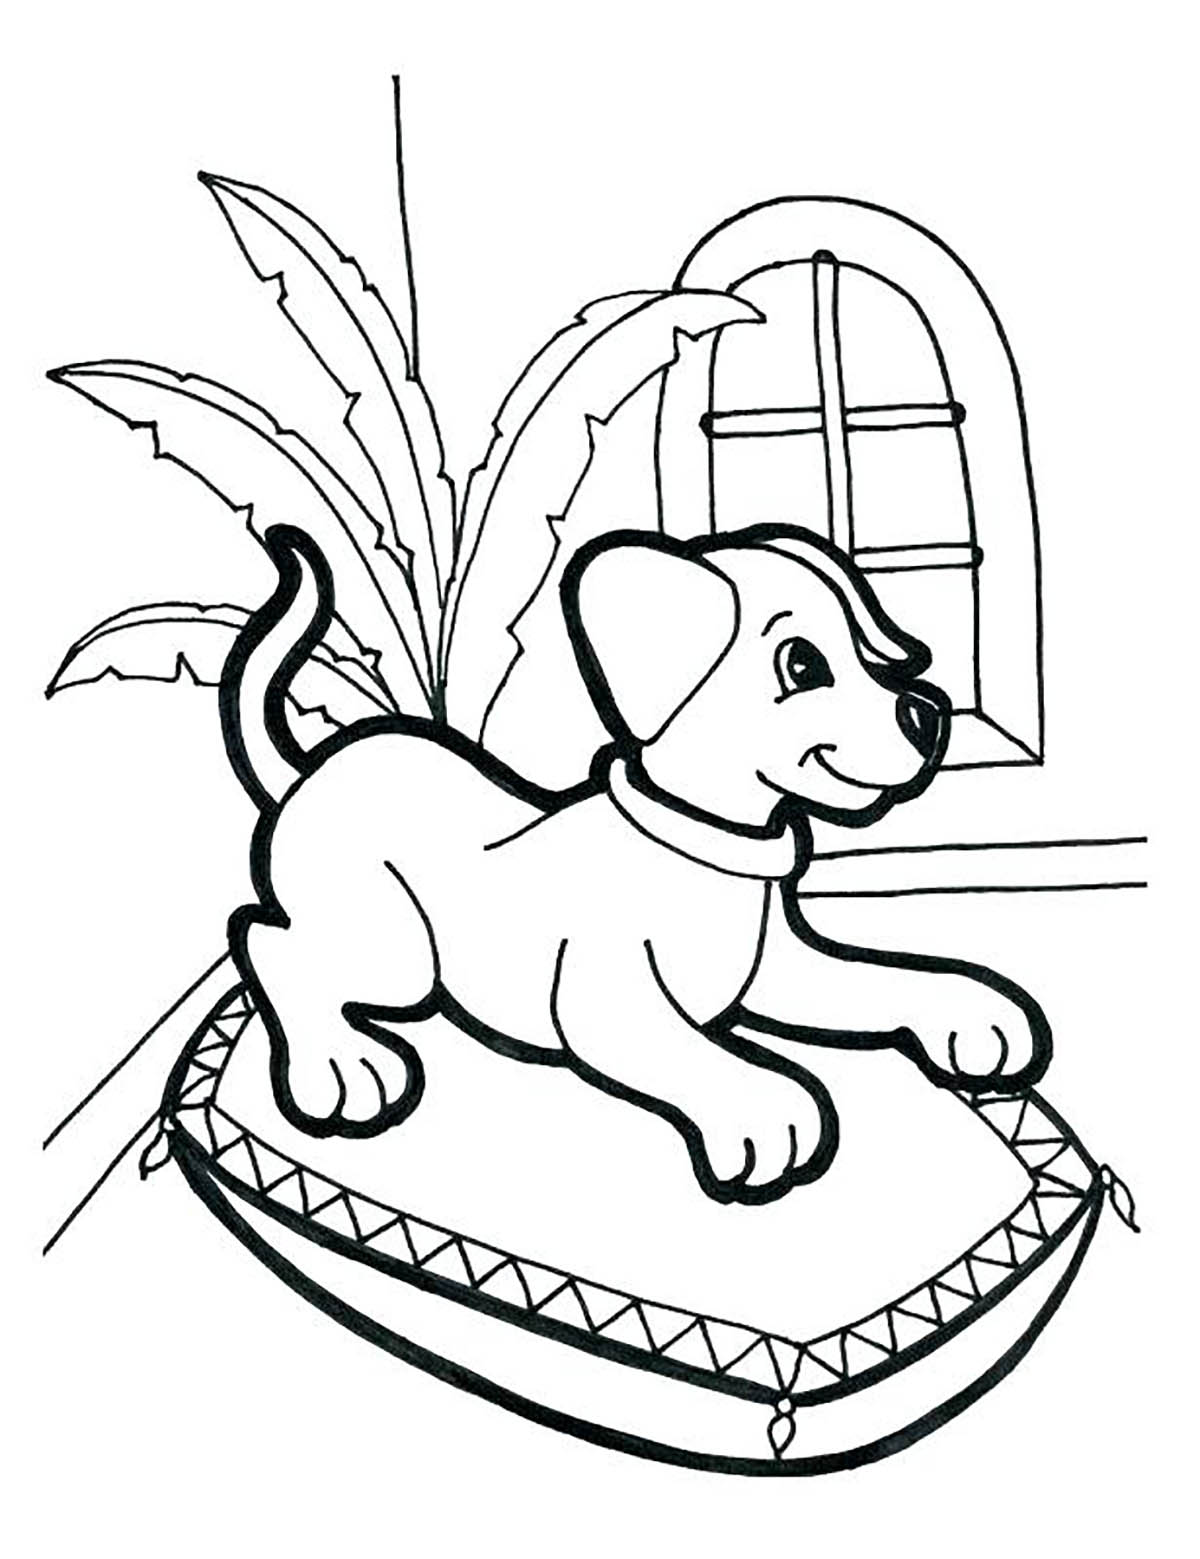 Dog to print : obedient dog - Dogs Kids Coloring Pages